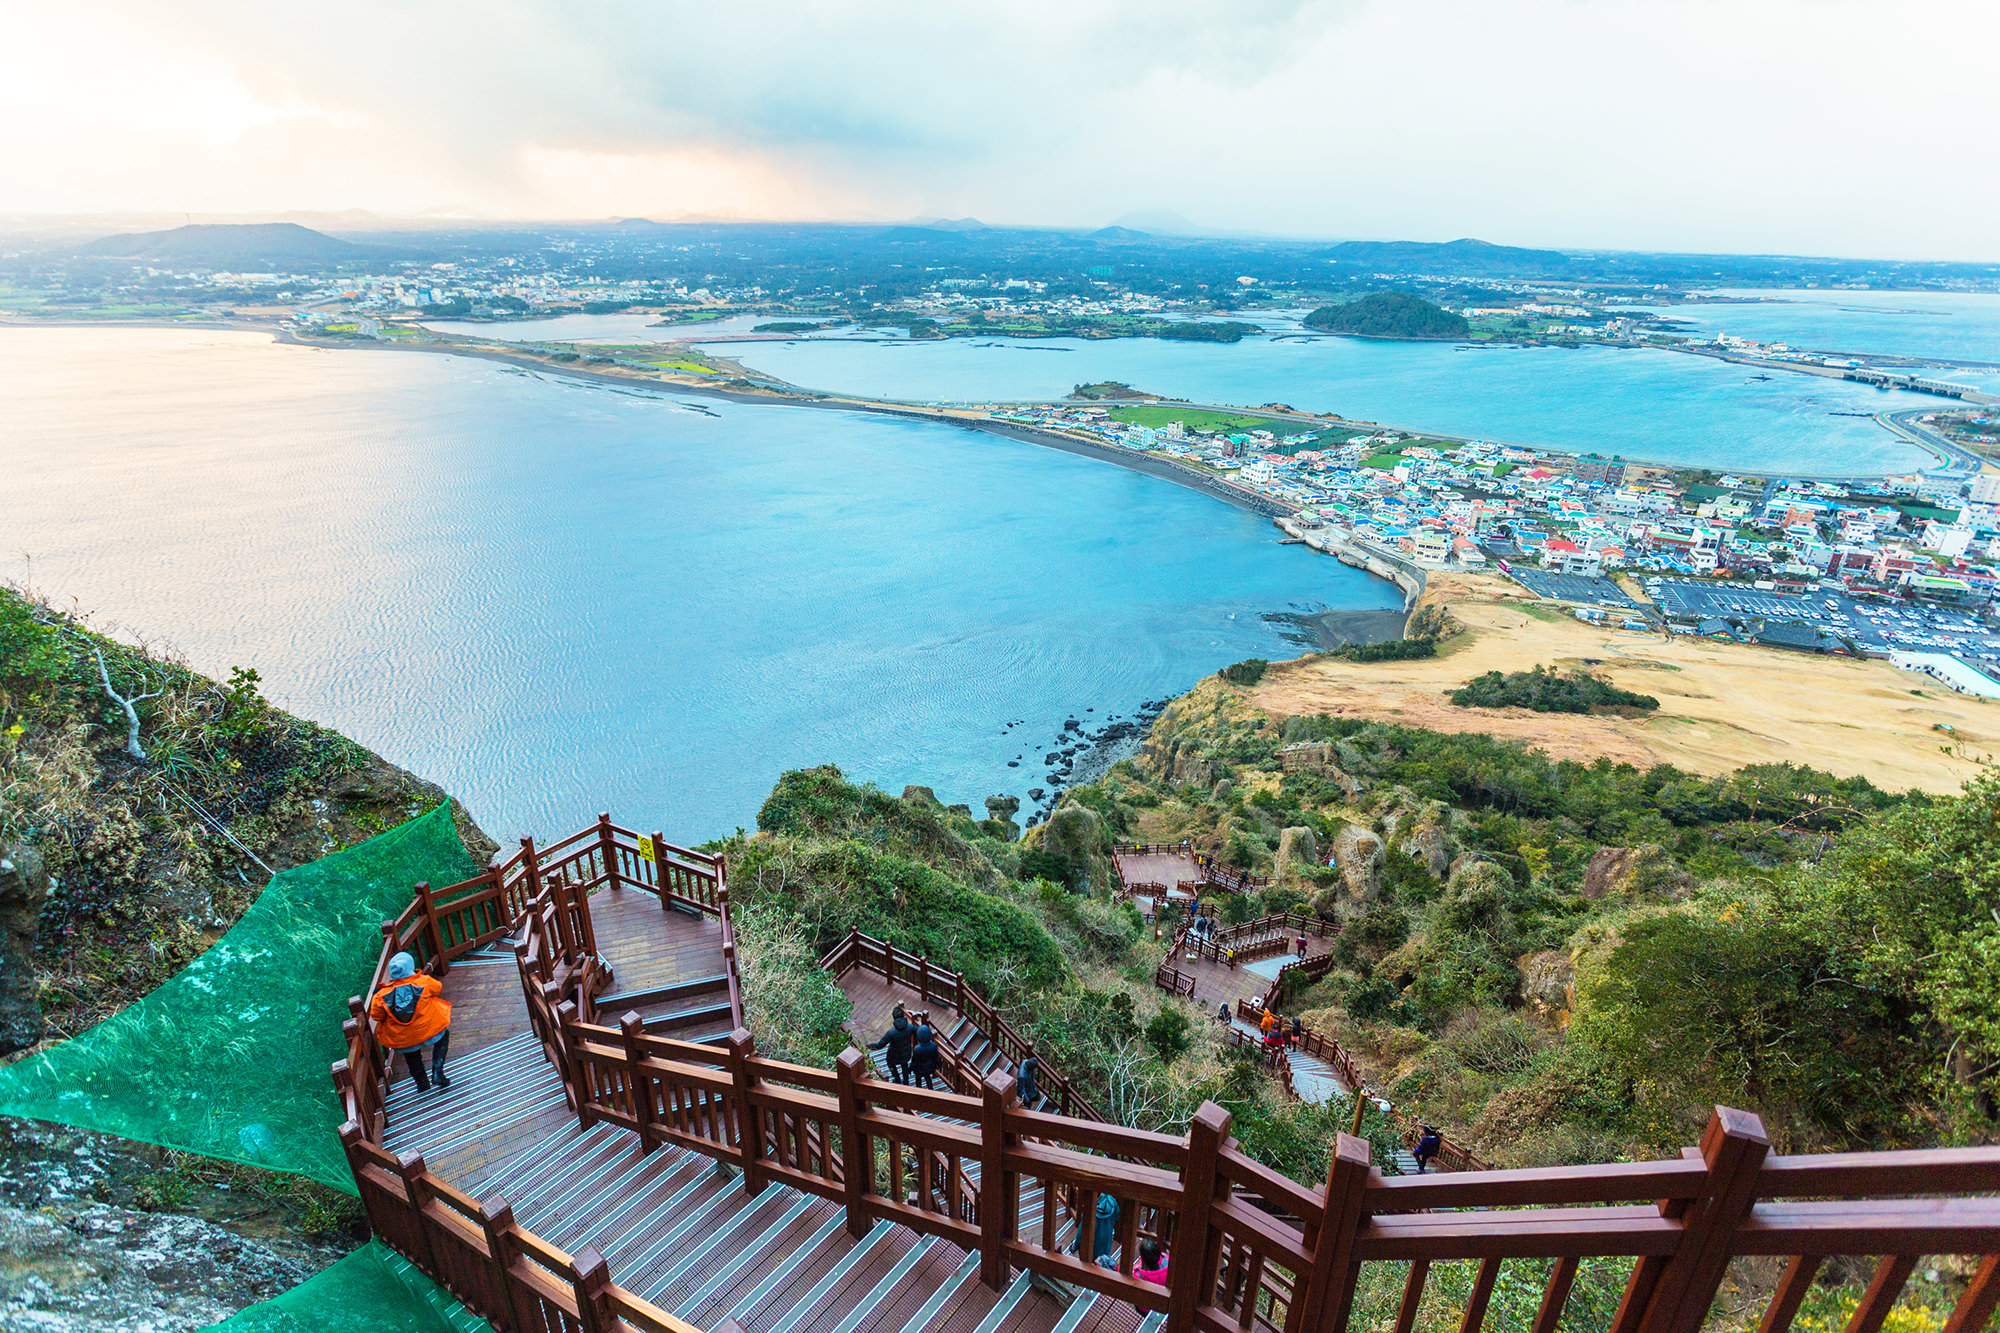 Hike up Seongsan Ilchulbong for a stunning ocean view.